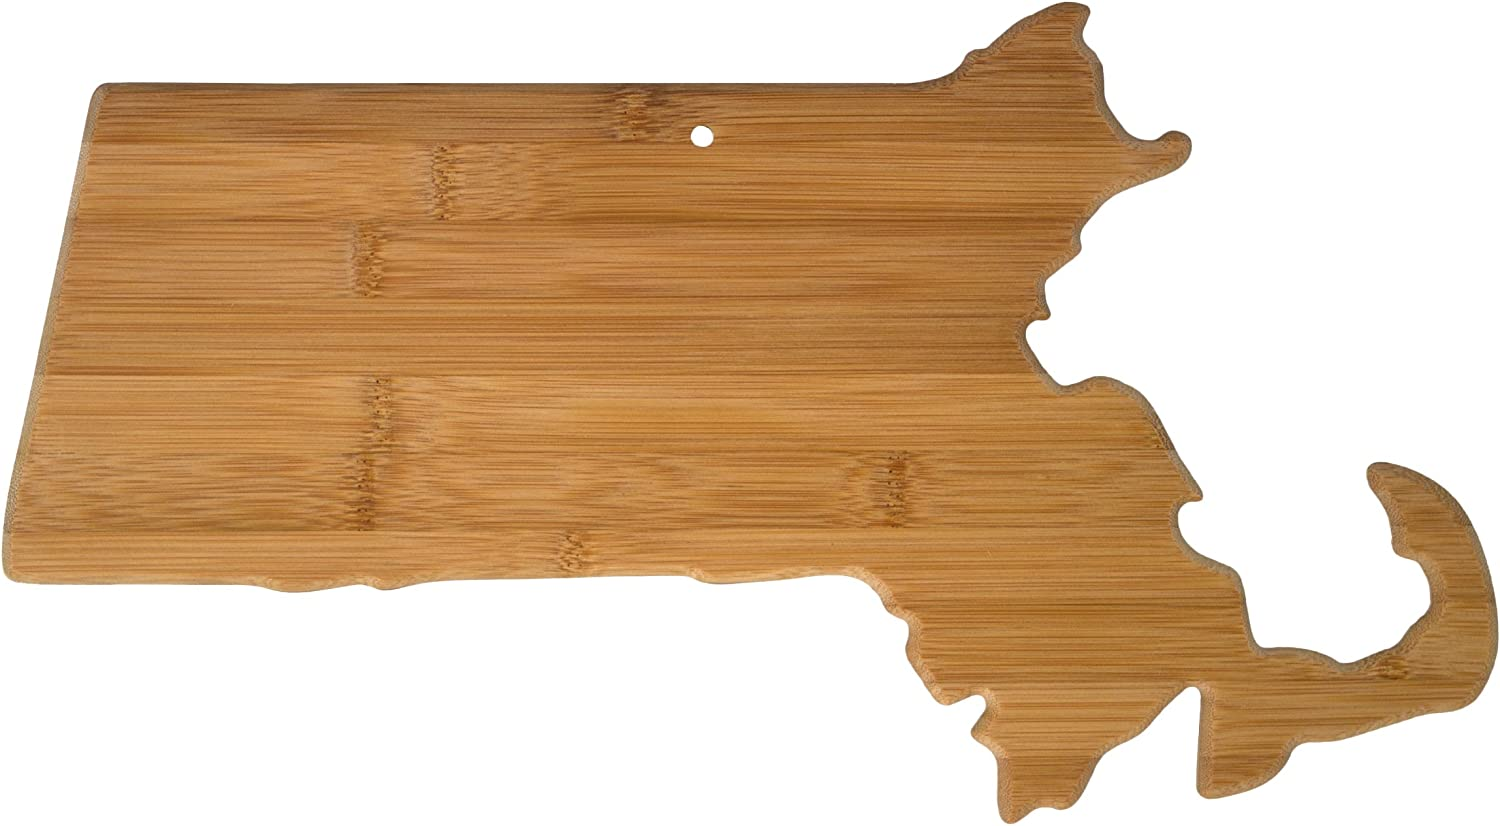 Totally Bamboo 20-8008MA Massachusetts State Shaped Bamboo Serving & Cutting Board